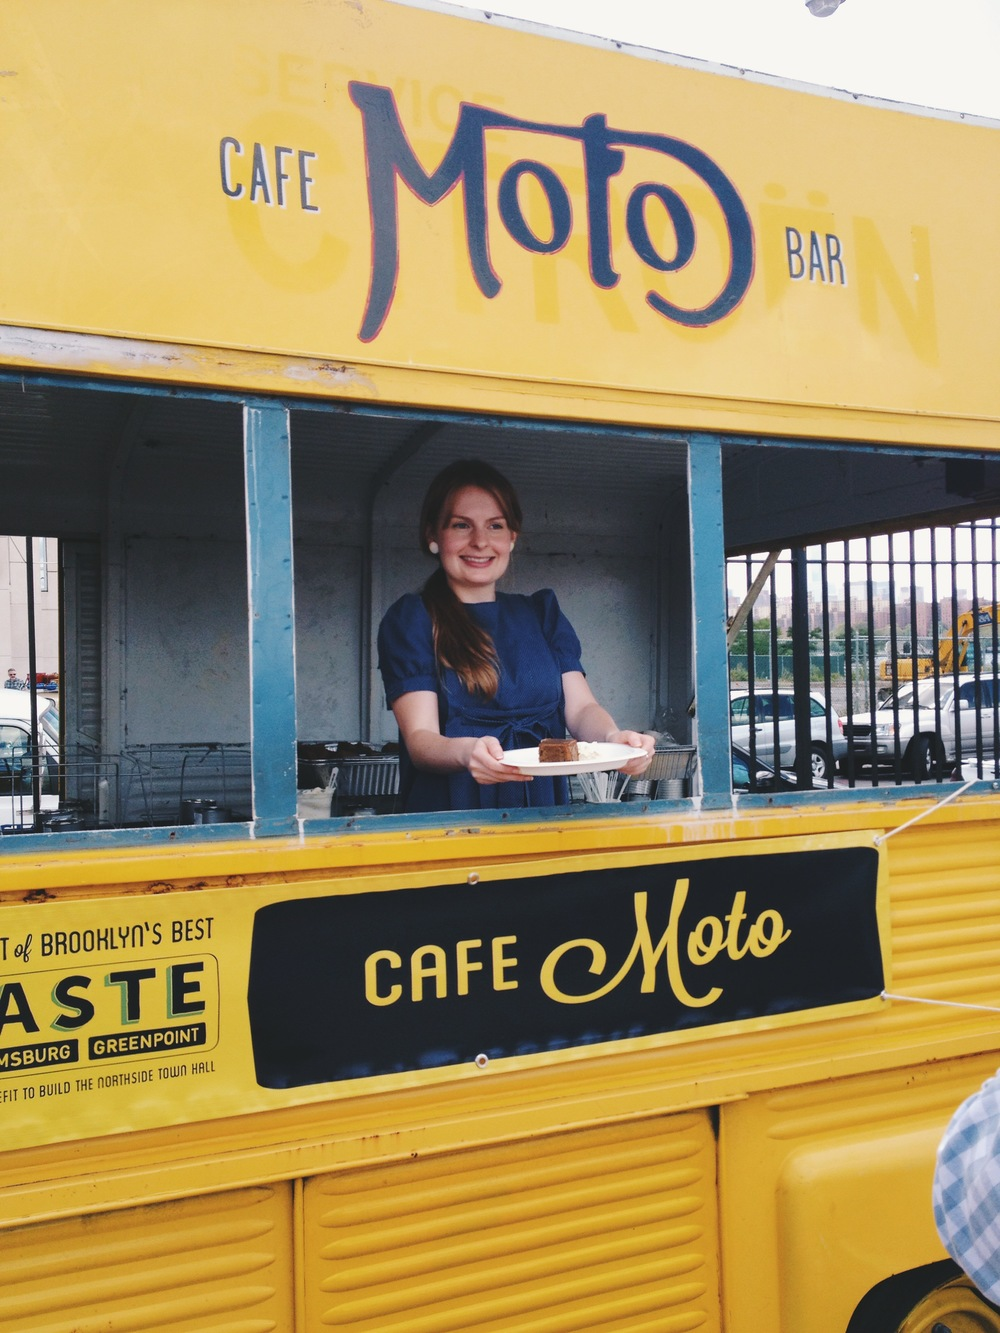 Emily serving up Moto's famous date cake